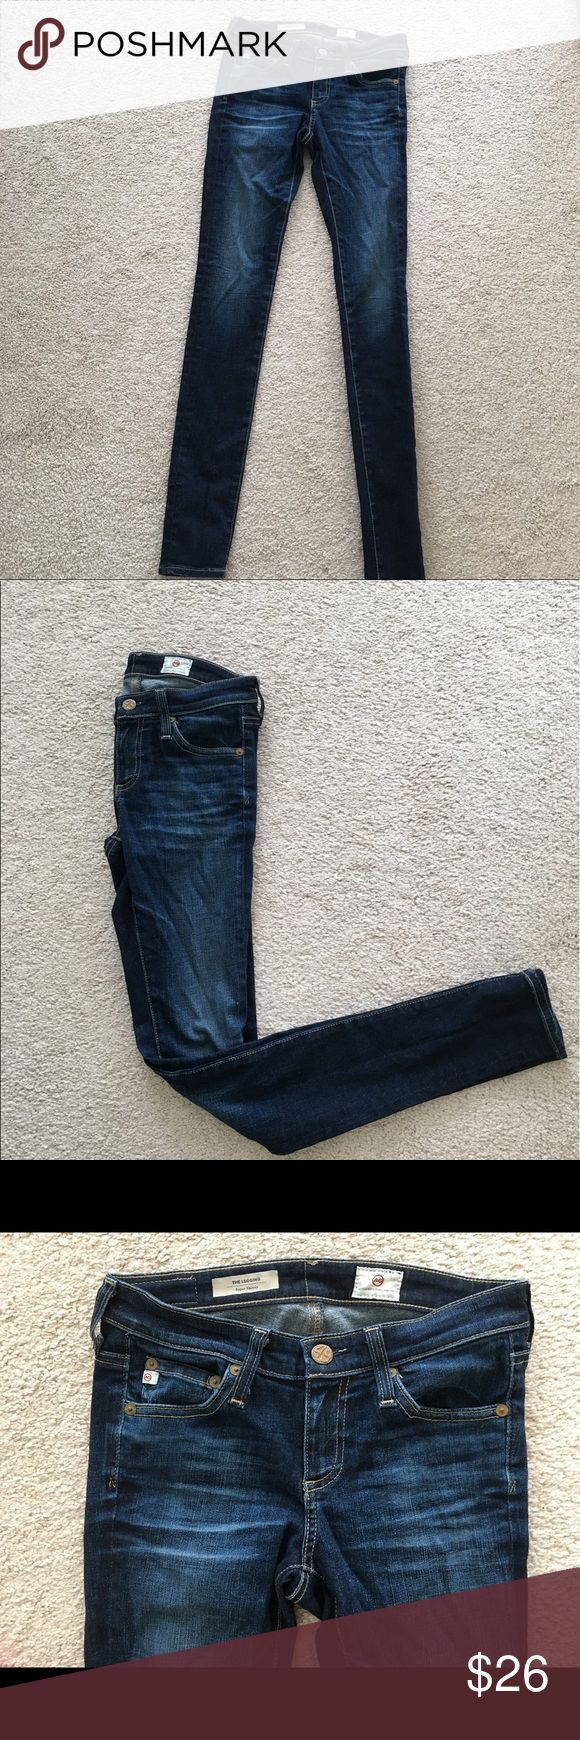 """AG women's """"the legging"""" super skinny jeans Women's jeans """"the legging"""" super skinny jeans from AG. Brand new !!!! Unworn perfect condition. Beautiful medium wash. Soft nice stretchy Denim. Super skinny fit. Ag Adriano Goldschmied Jeans Skinny"""